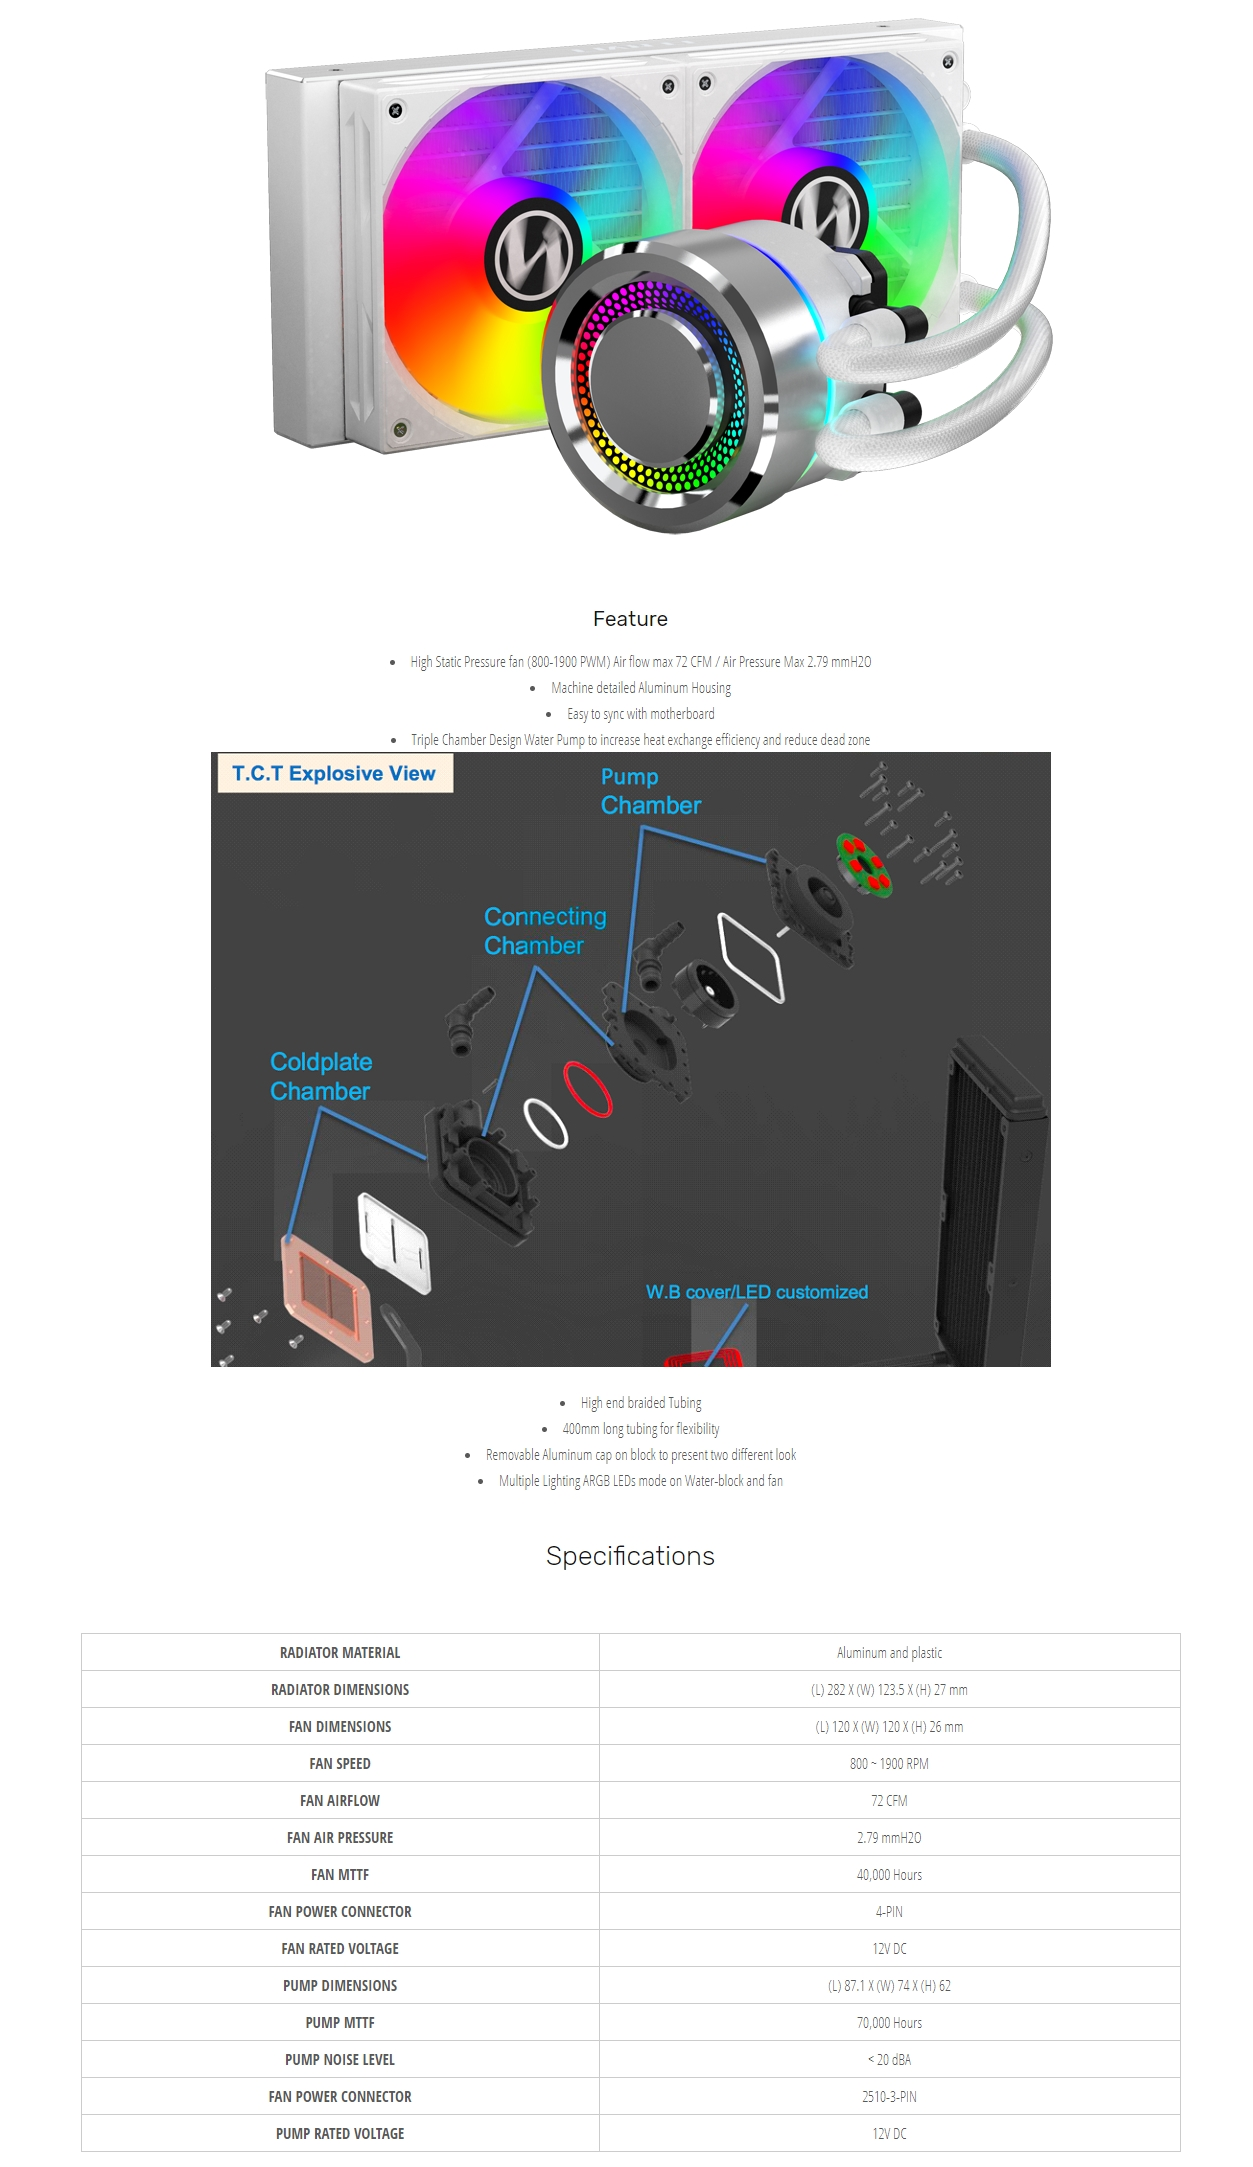 A large marketing image providing additional information about the product Lian-Li Galahad 240 Silver ARGB AIO Liquid CPU Cooler - Additional alt info not provided